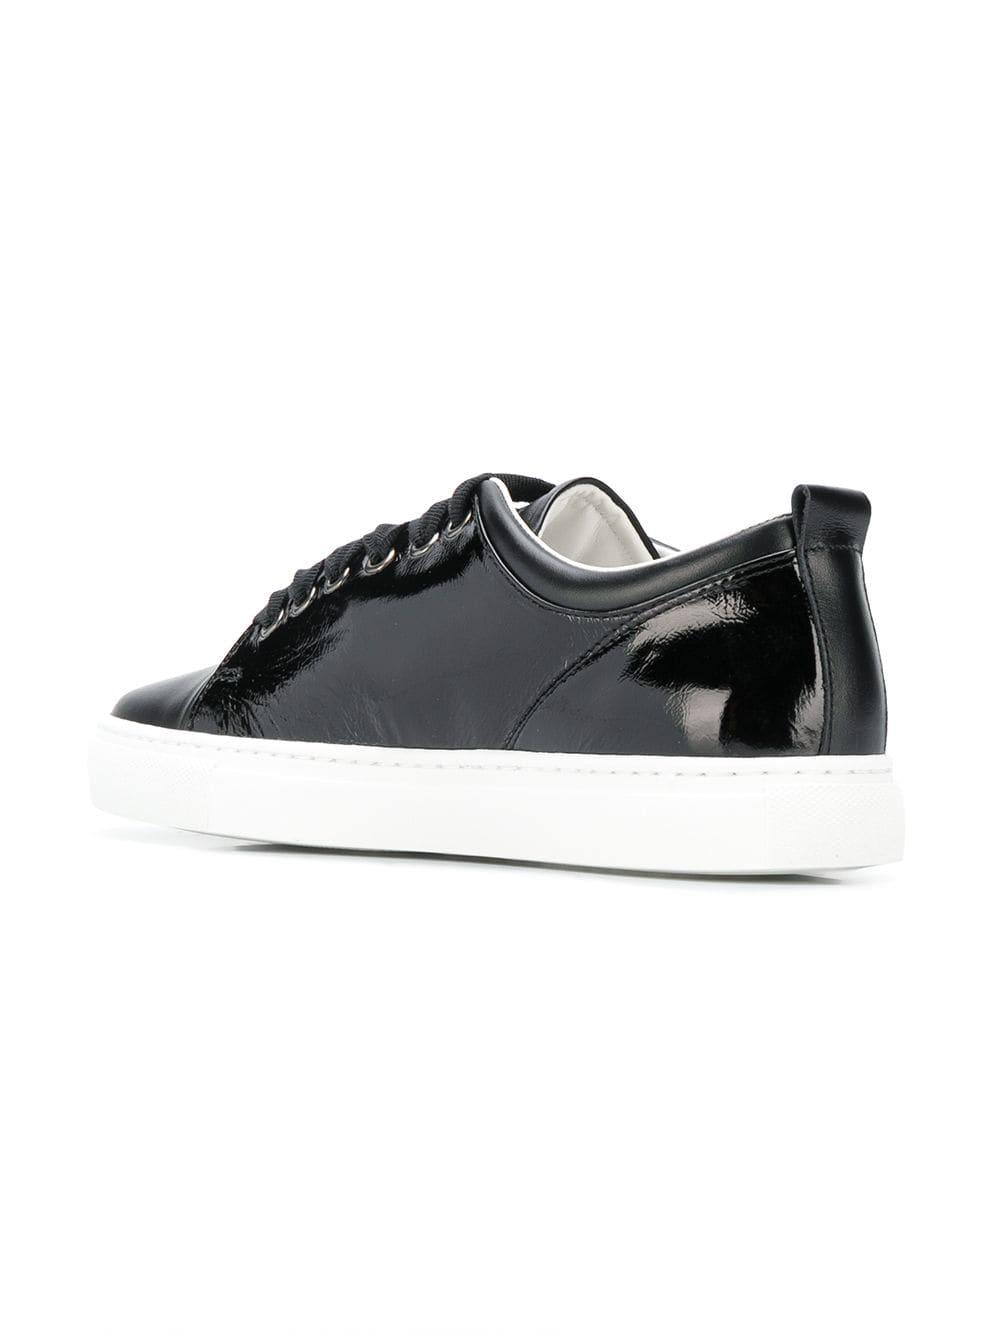 Lanvin Leather Patent Tennis Sneakers